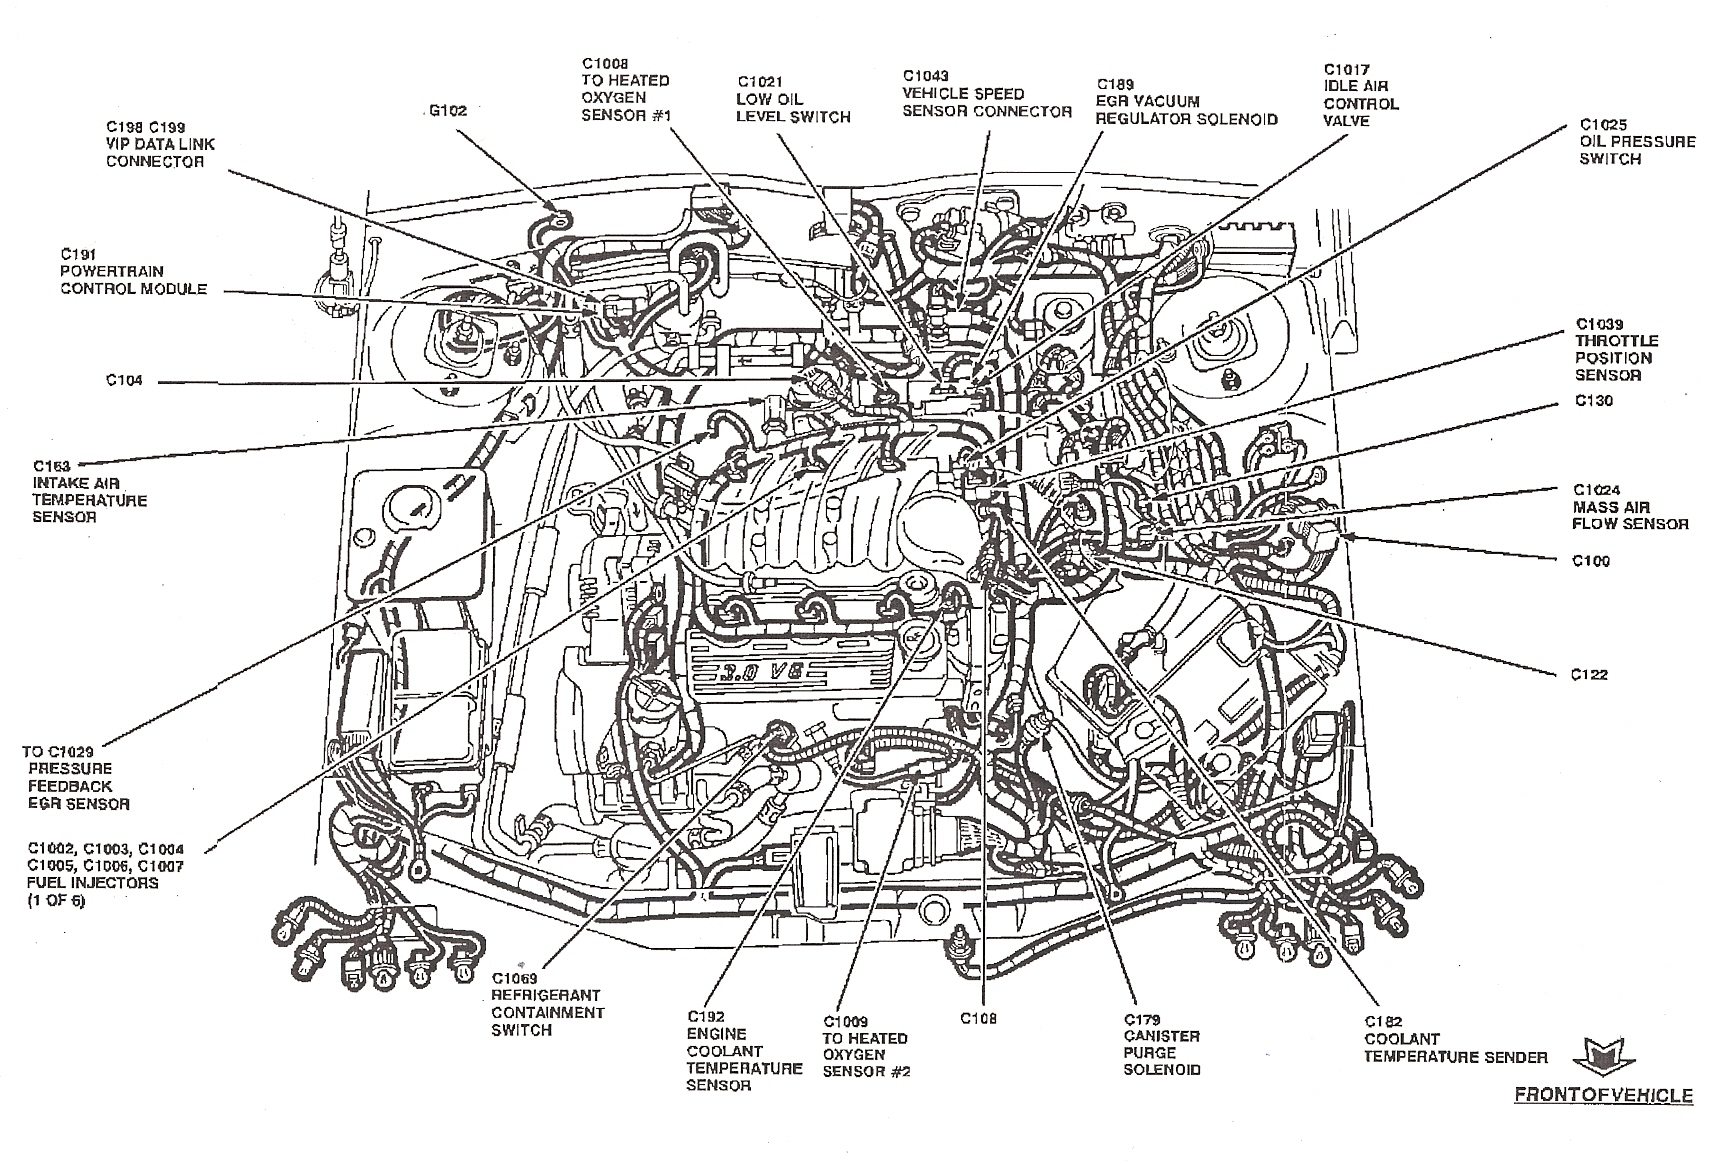 Ford Focus Zts Fuse Box 2002 Engine Diagram Cooling Download Wiring Diagrams Solutions Rh Rausco Com Manual Sedan